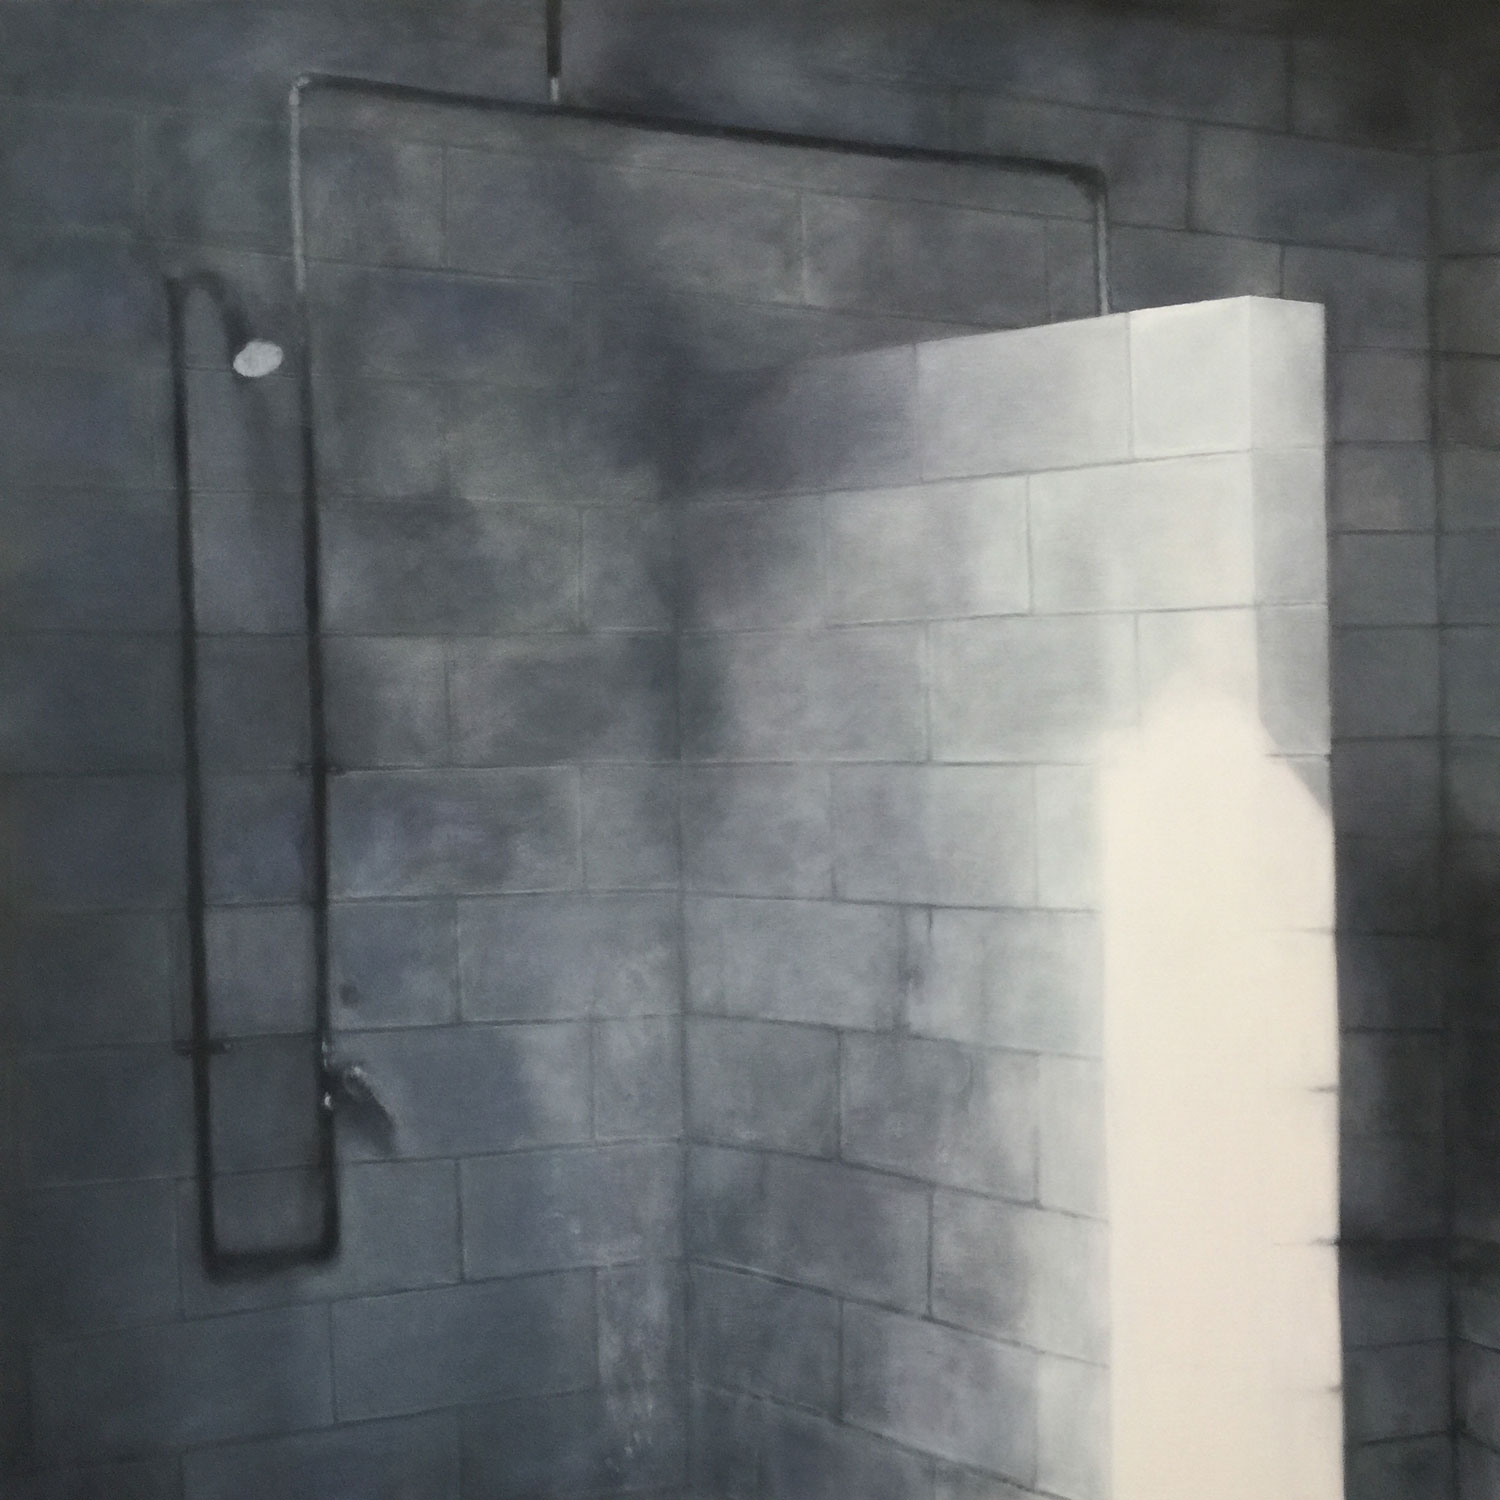 """The Shower, 2018 Oil on canvas 42x42"""""""